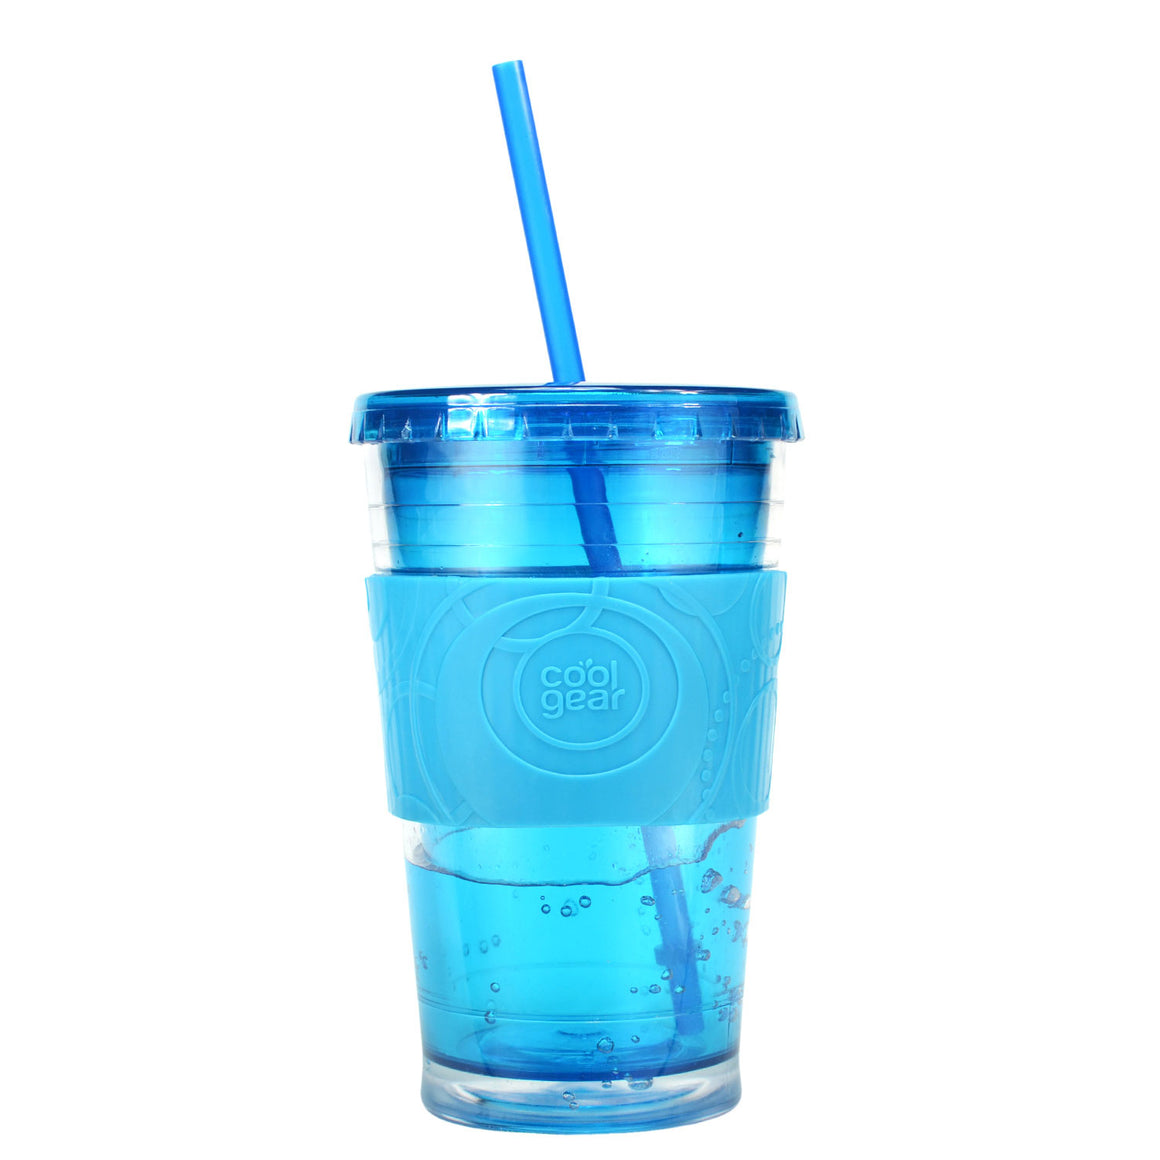 Green 20 Oz Gel Chiller (With Band) at Cool Gear Tumblers